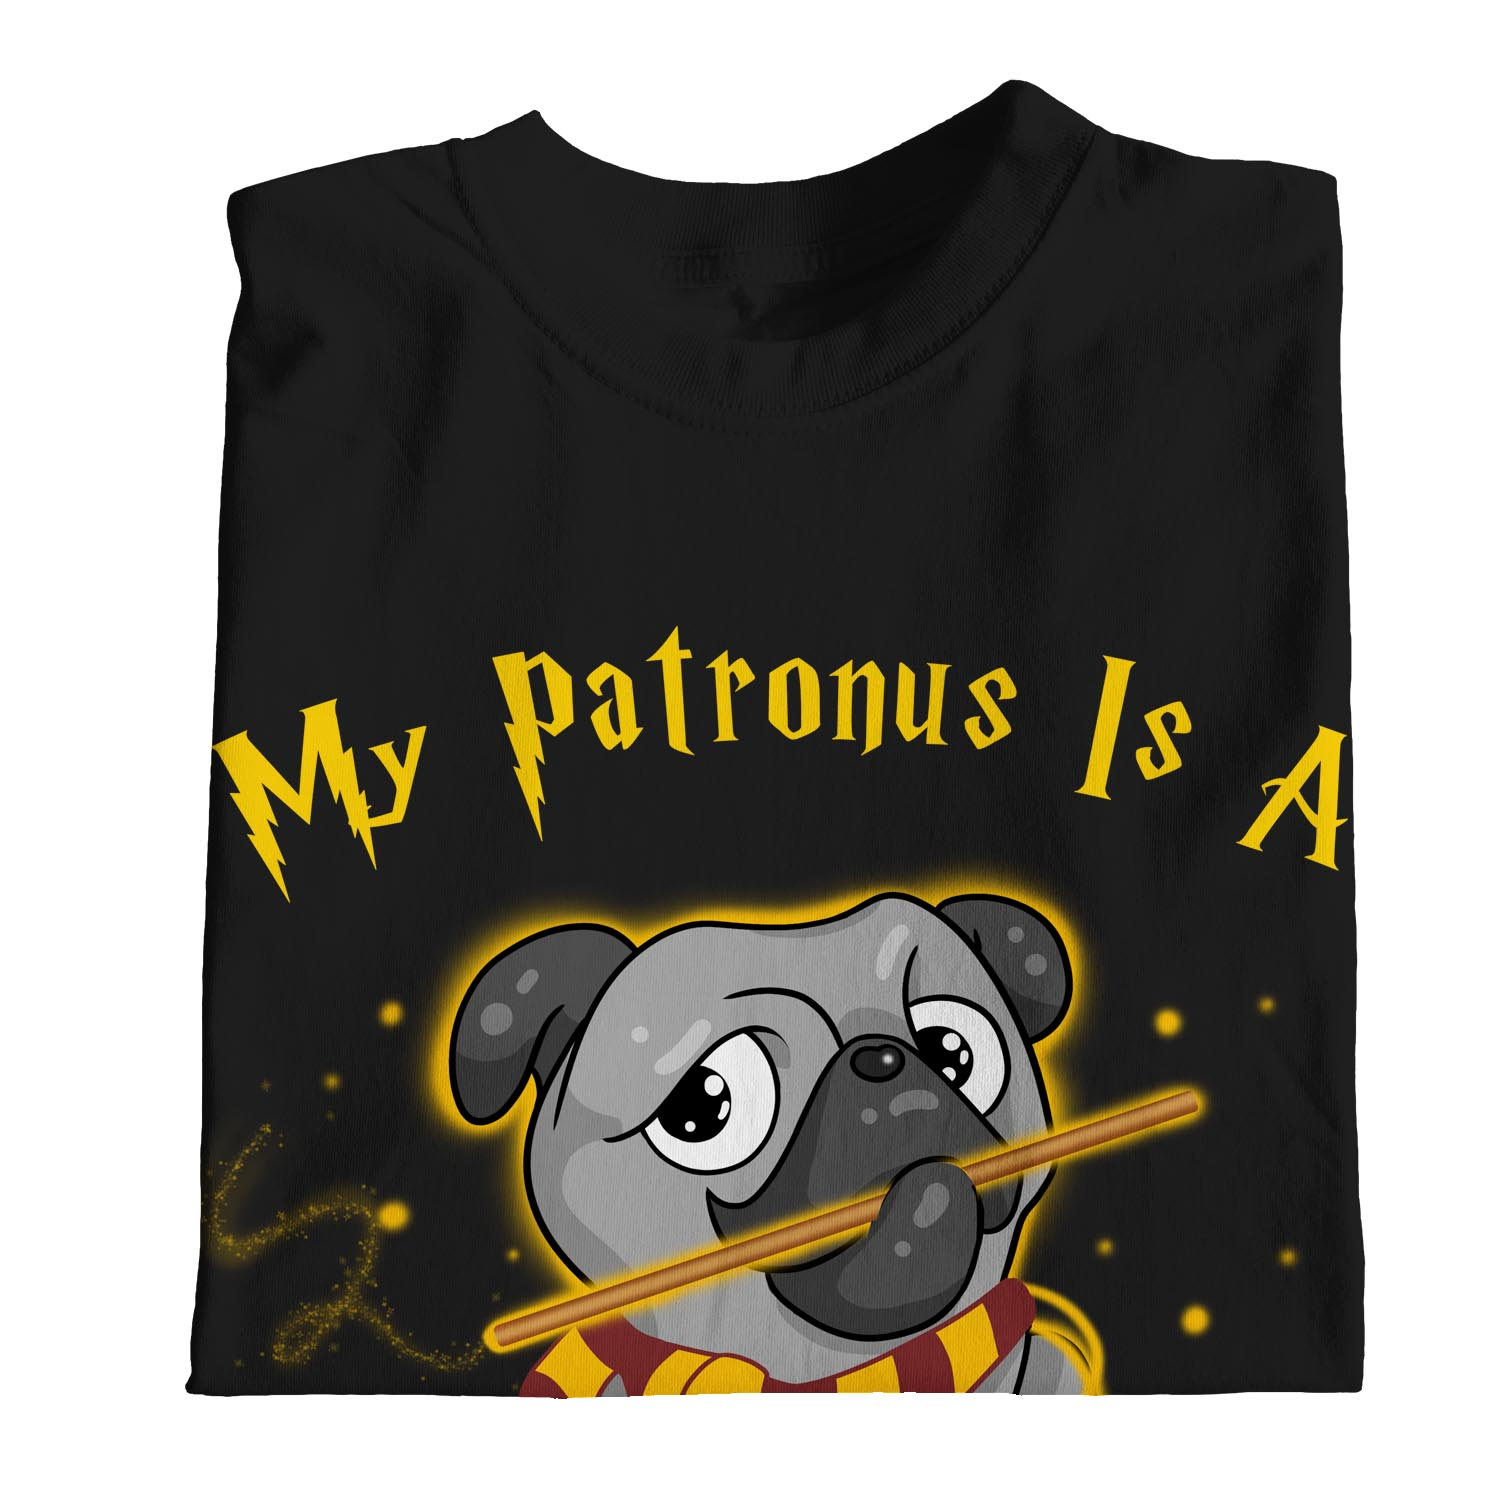 1Tee Womens Loose Fit My Patronus Is A Pug Dog T-Shirt